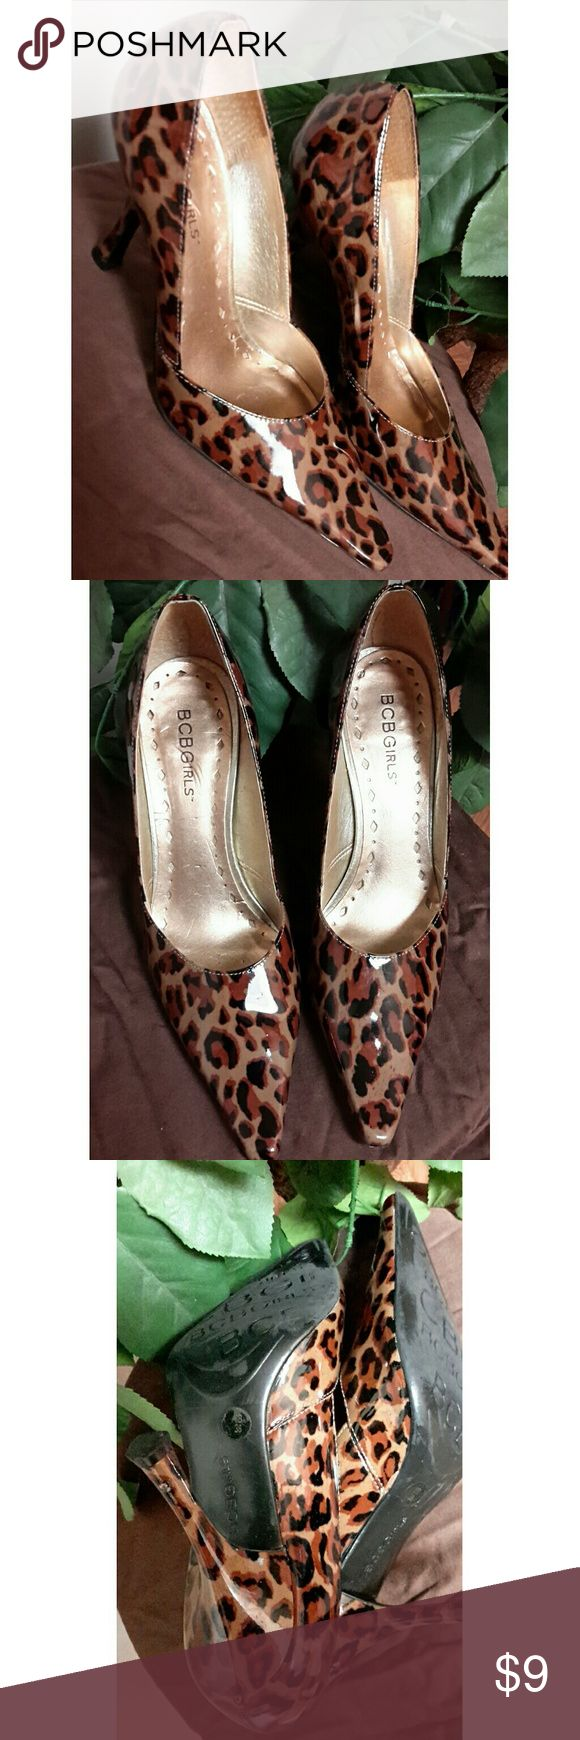 BCBGirls Leopard Print Heels Size 6. Heel has some scuff marks and scratches. Scratches on inside and bottom of heels. Questions are welcomed. BCBGirls Shoes Heels